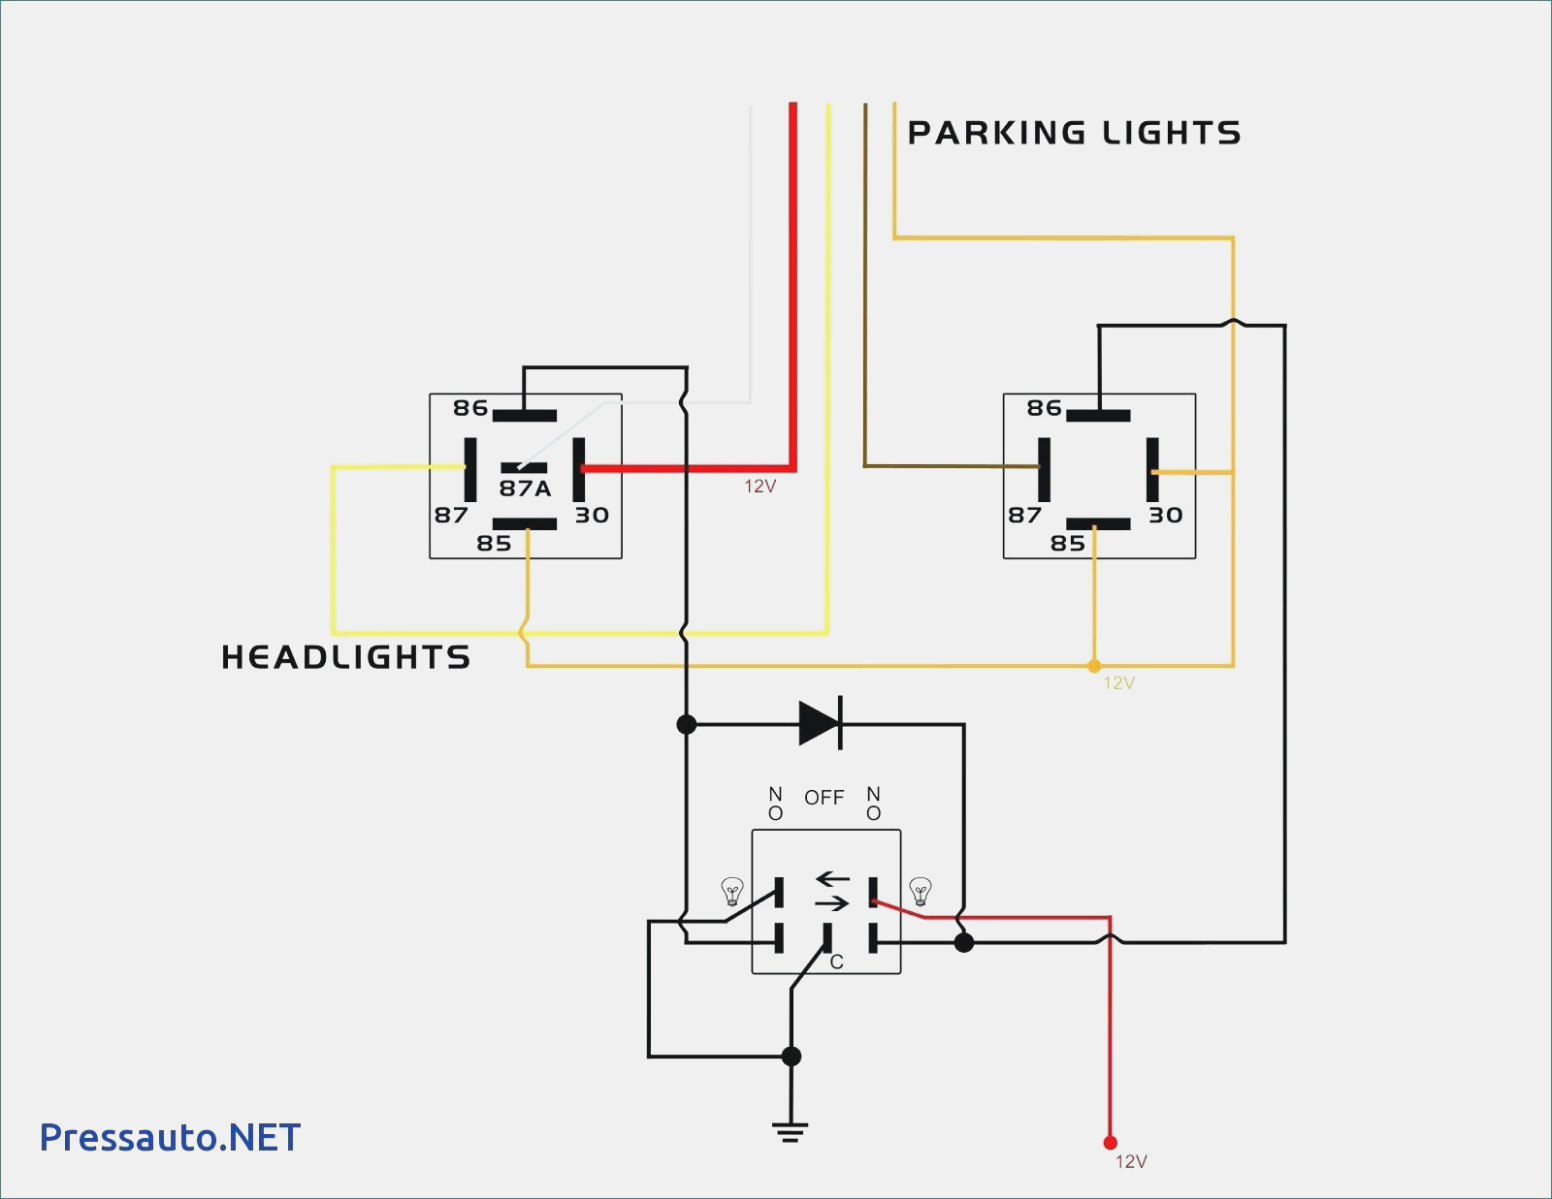 Bennett Trim Tabs Wiring Diagrams